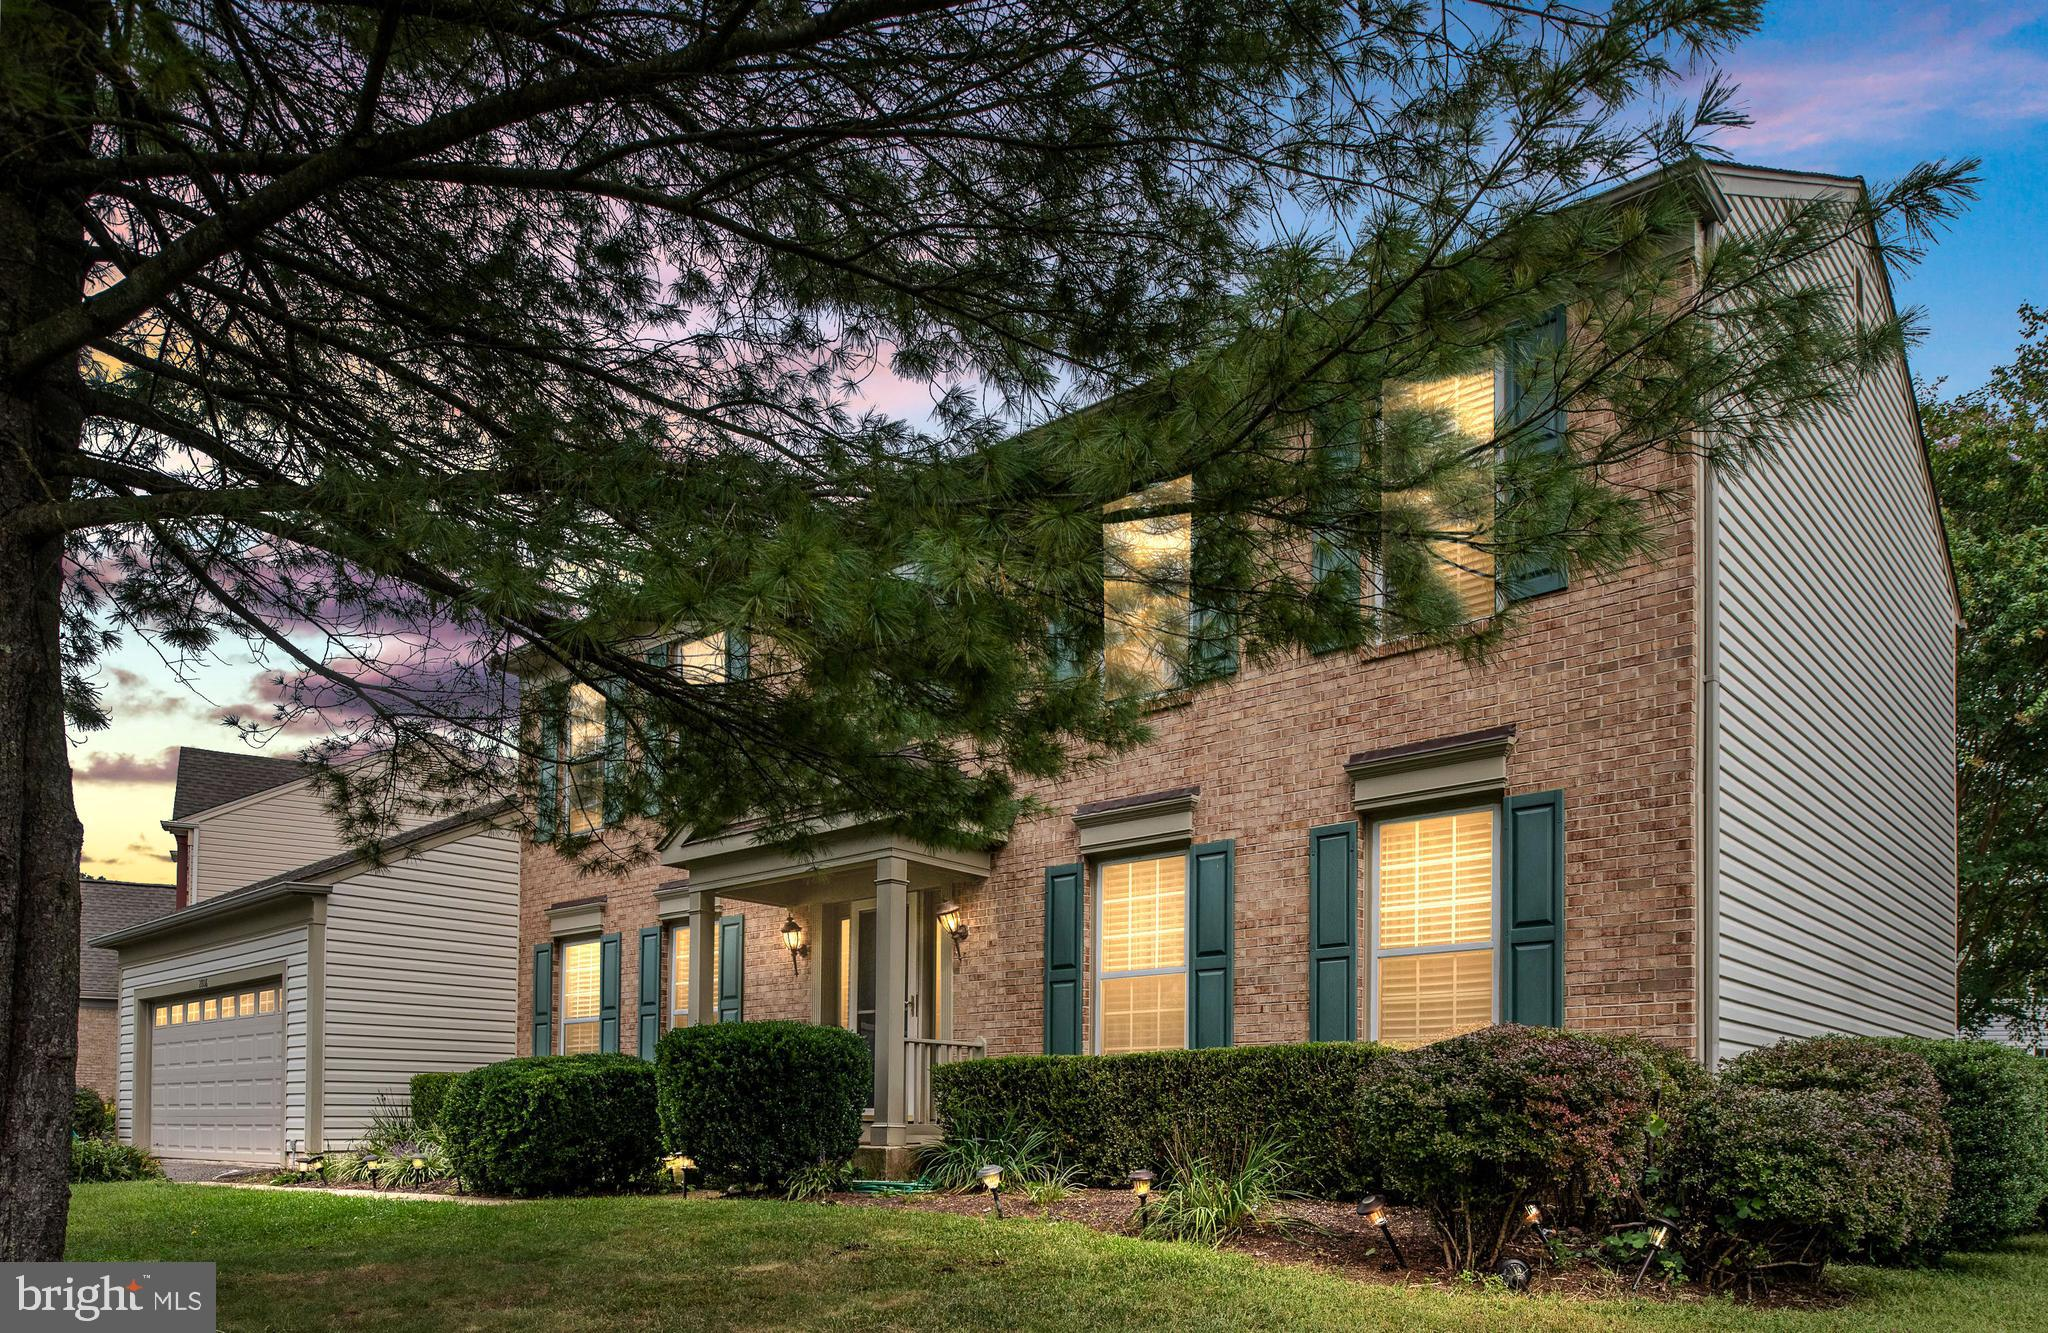 A Must see in the heart of Lakeridge/perfect location!! 2-Car Gar w/fenced flat backyard/Patio. Home has been recently painted.  Solid HardWood floors throughout the main and upper level, office, remodeled Kitchen with Stainless Steel appliances and granite countertops.  The upper level offers 4 spacious bedrooms and  2 full  baths NEWLY RENOVATED!! Luxury Master w/V-ceilings  , D- sinks, walk-in closet, skylights, jacuzzi Tub &  separate shower.  Newer Roof, siding and A/C and much more located near shops, restaurants, commuter lots & much more!